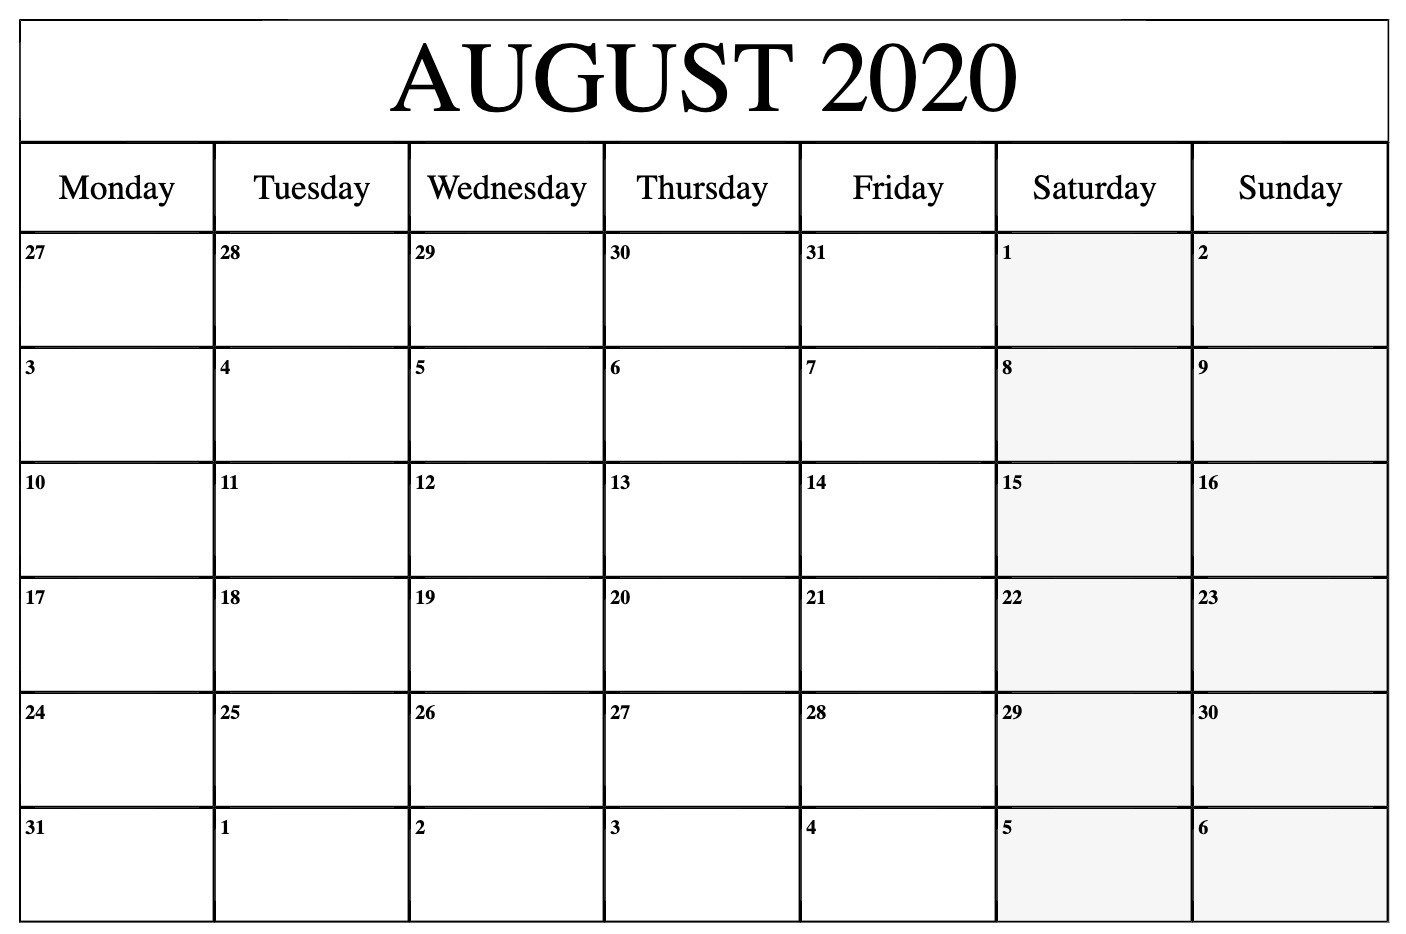 August 2020 Calendar Holidays Printable